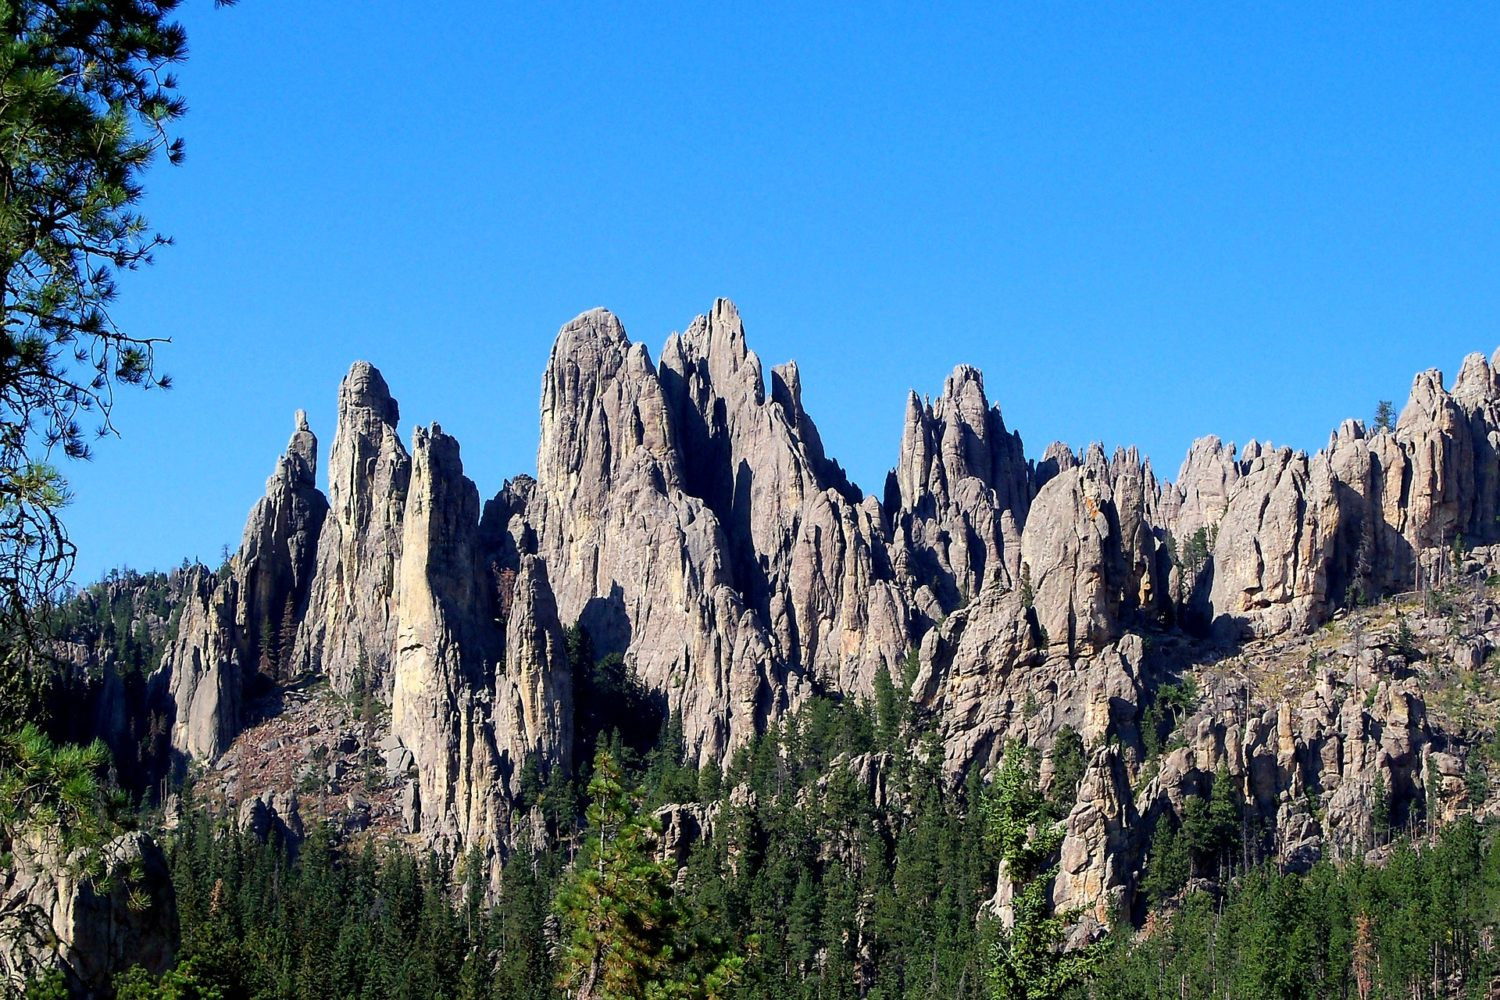 Incredible rock formations can be seen in South Dakota